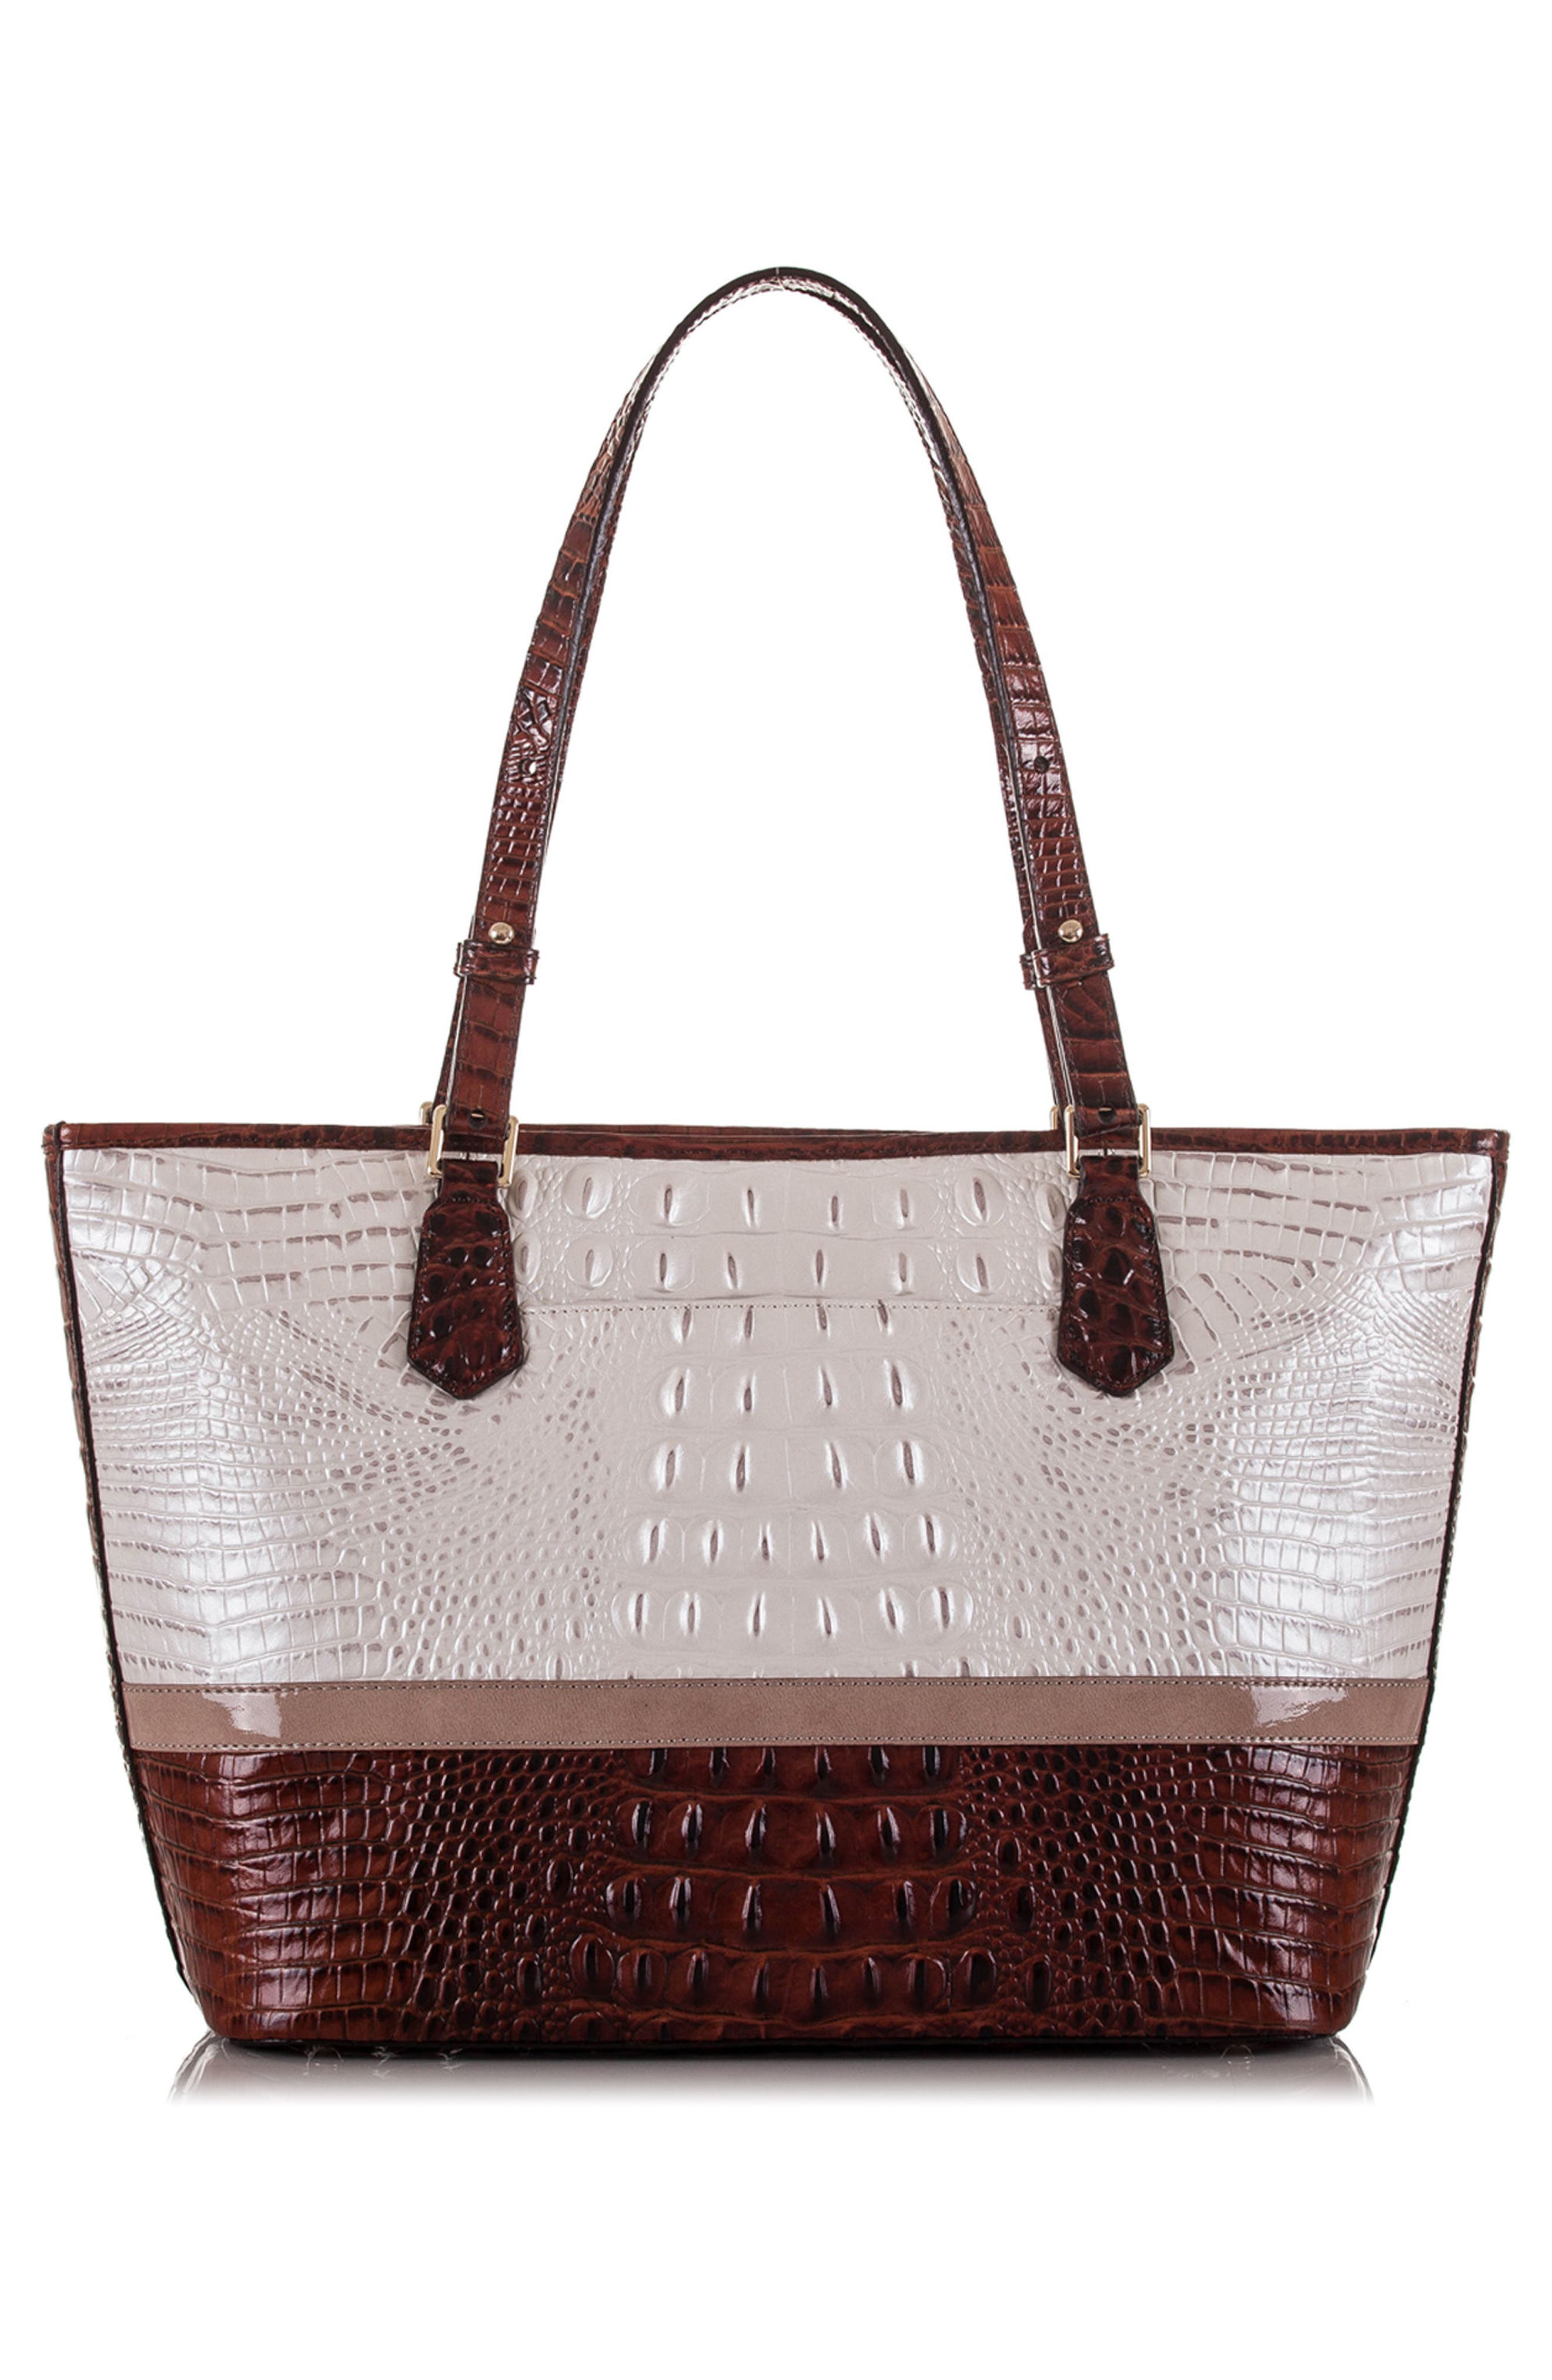 Medium Durance - Asher Croc Embossed Leather Tote,                             Alternate thumbnail 2, color,